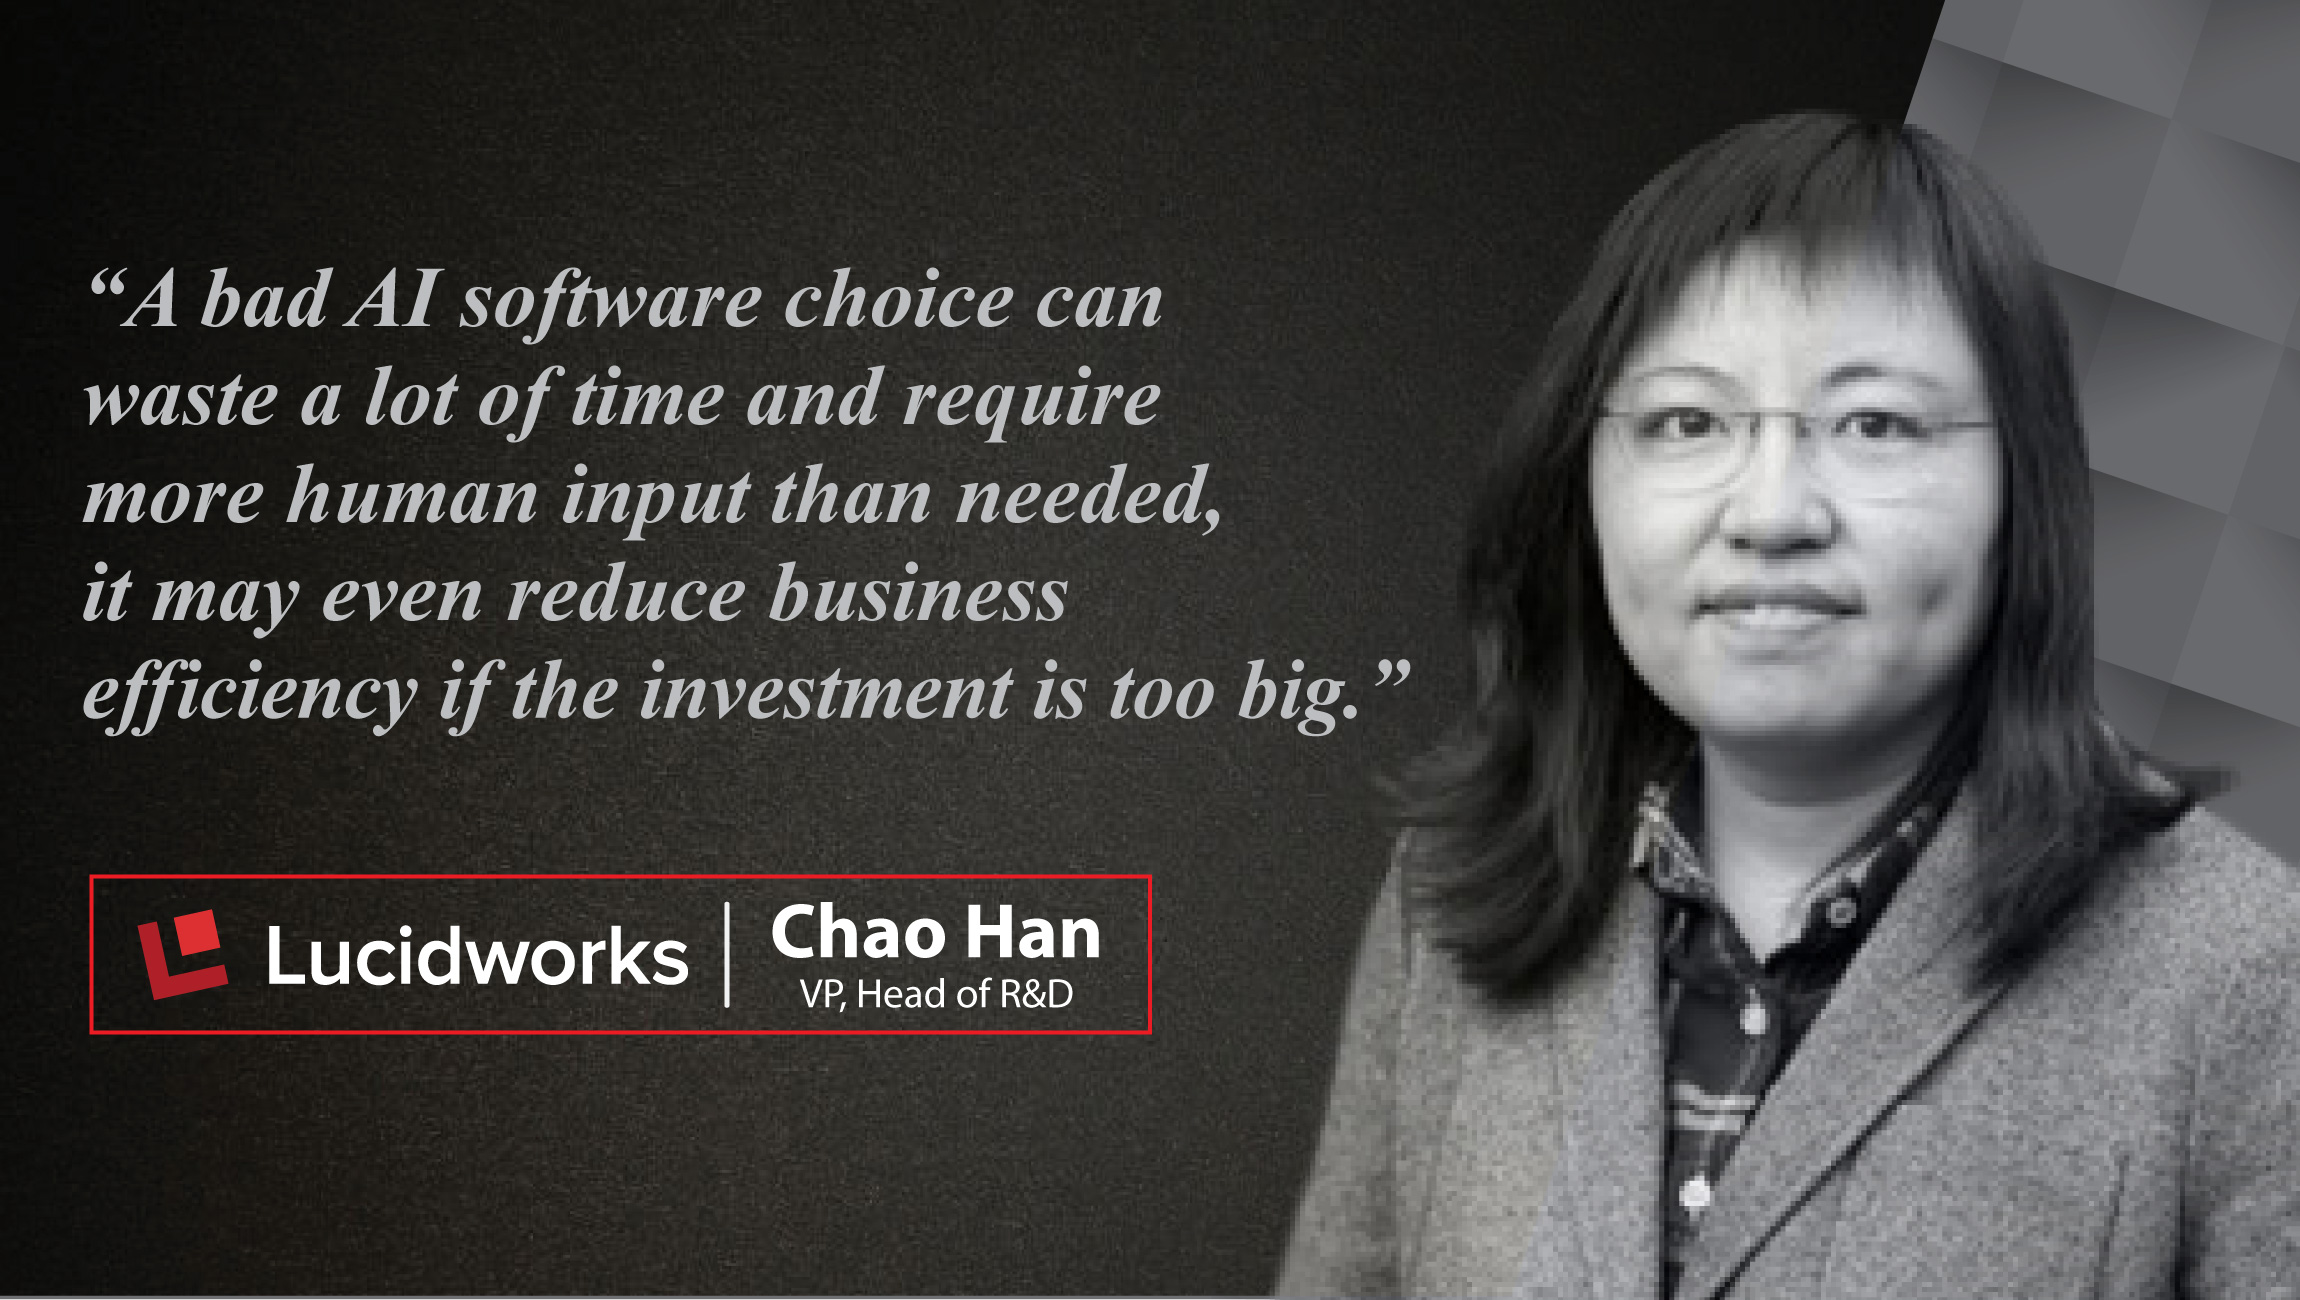 Interview with Chao Han, VP, Head of R&D at Lucidworks